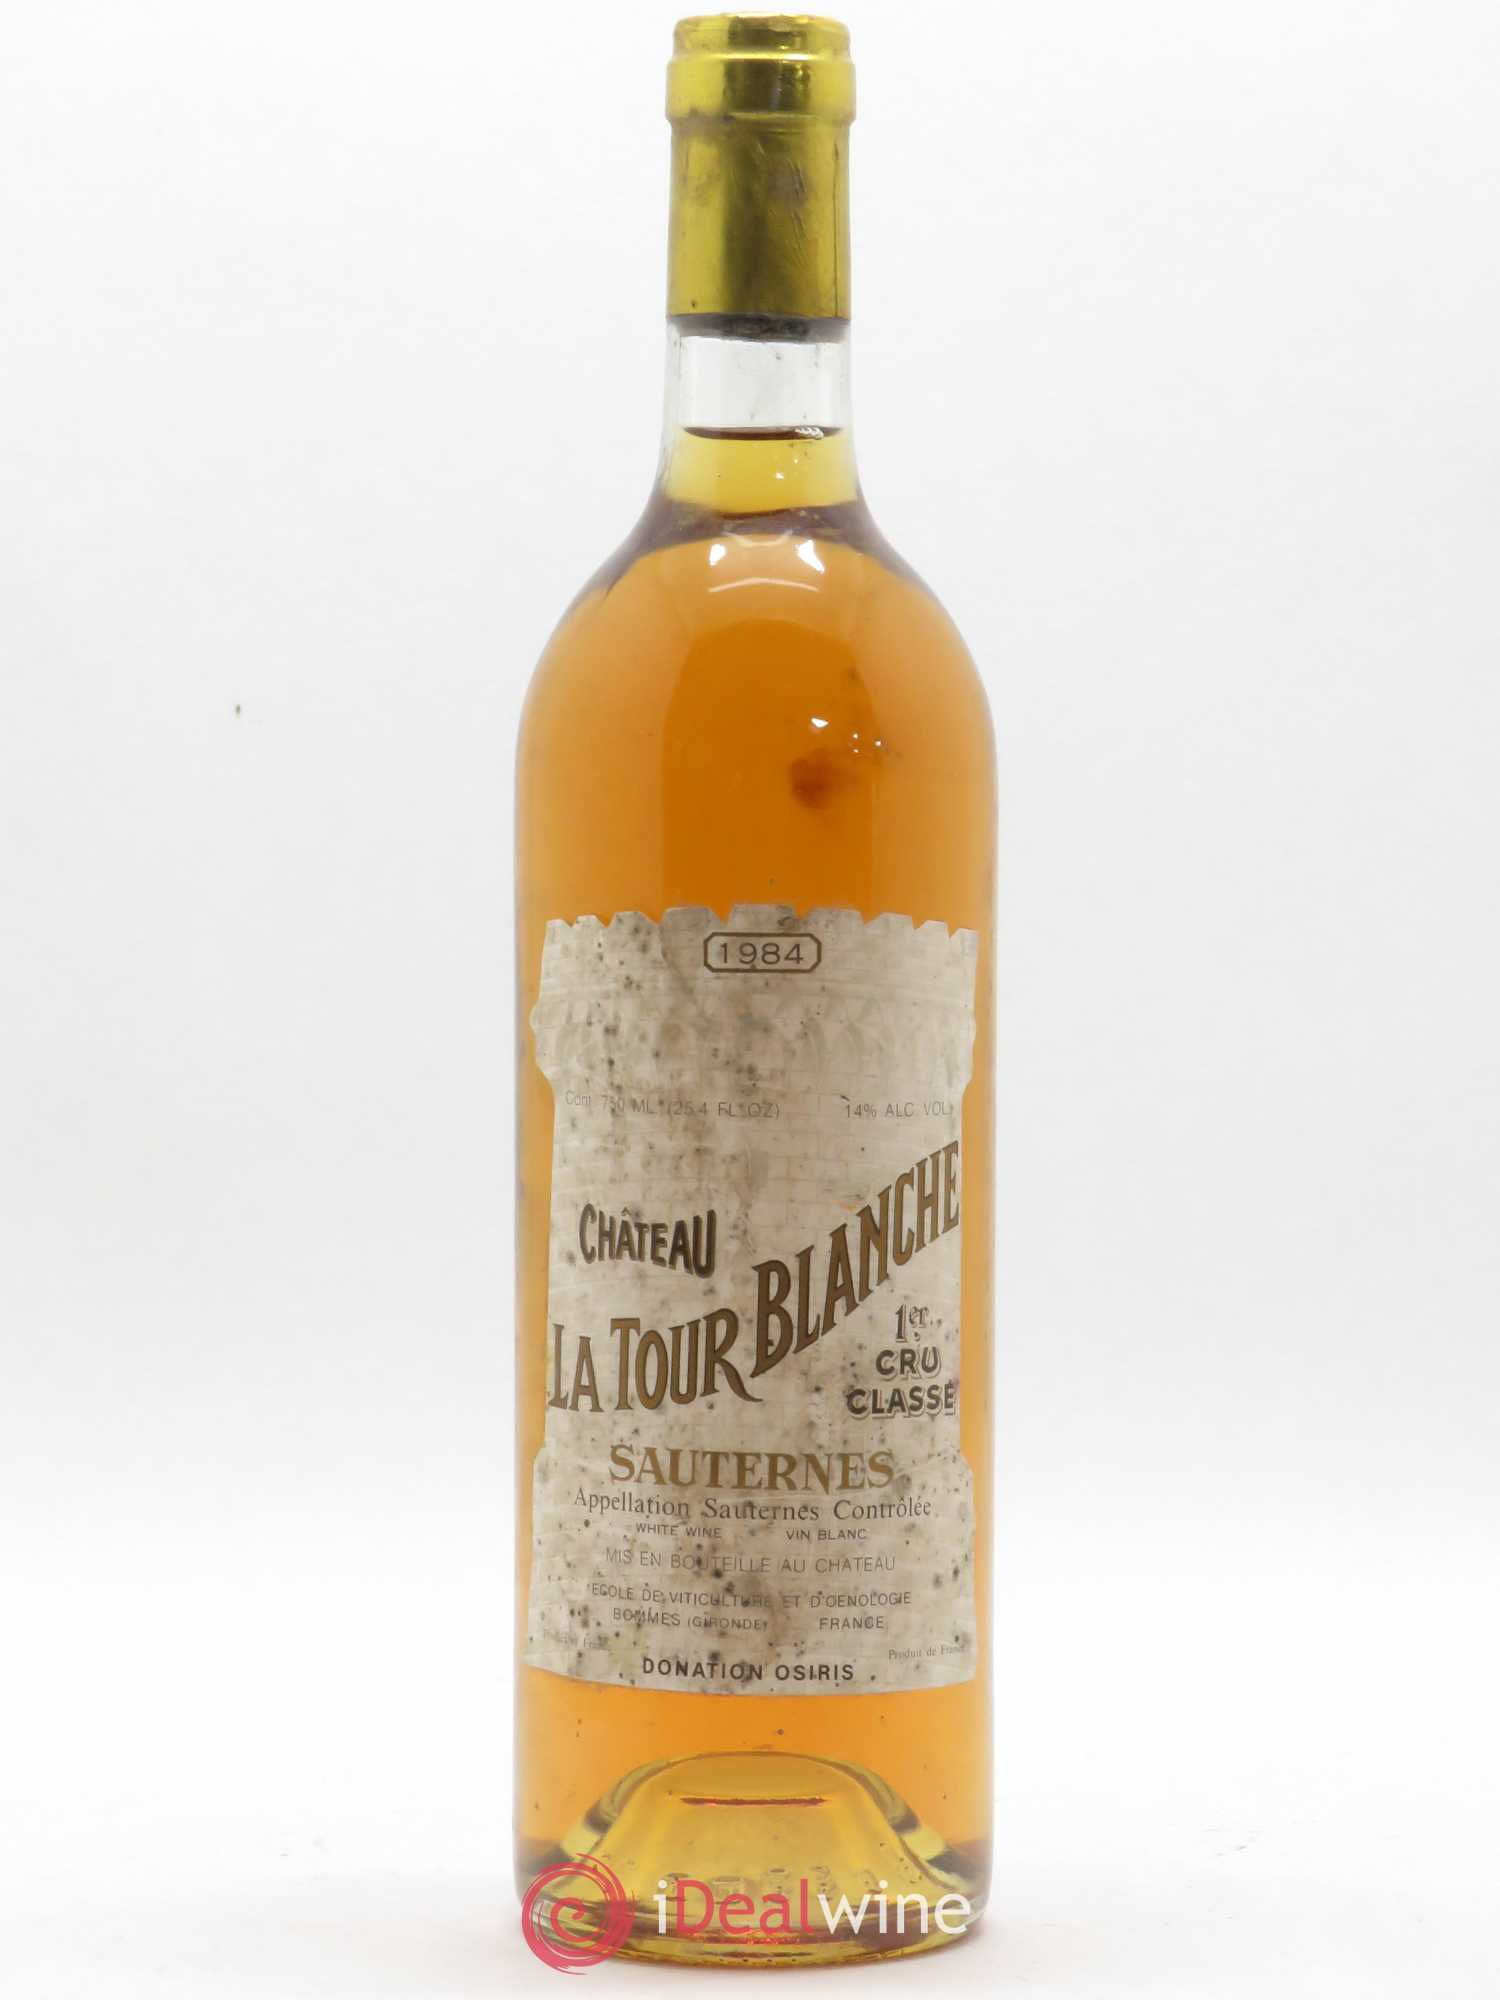 Château la Tour Blanche 1er Grand Cru Classé  1984 - Lot of 1 Bottle